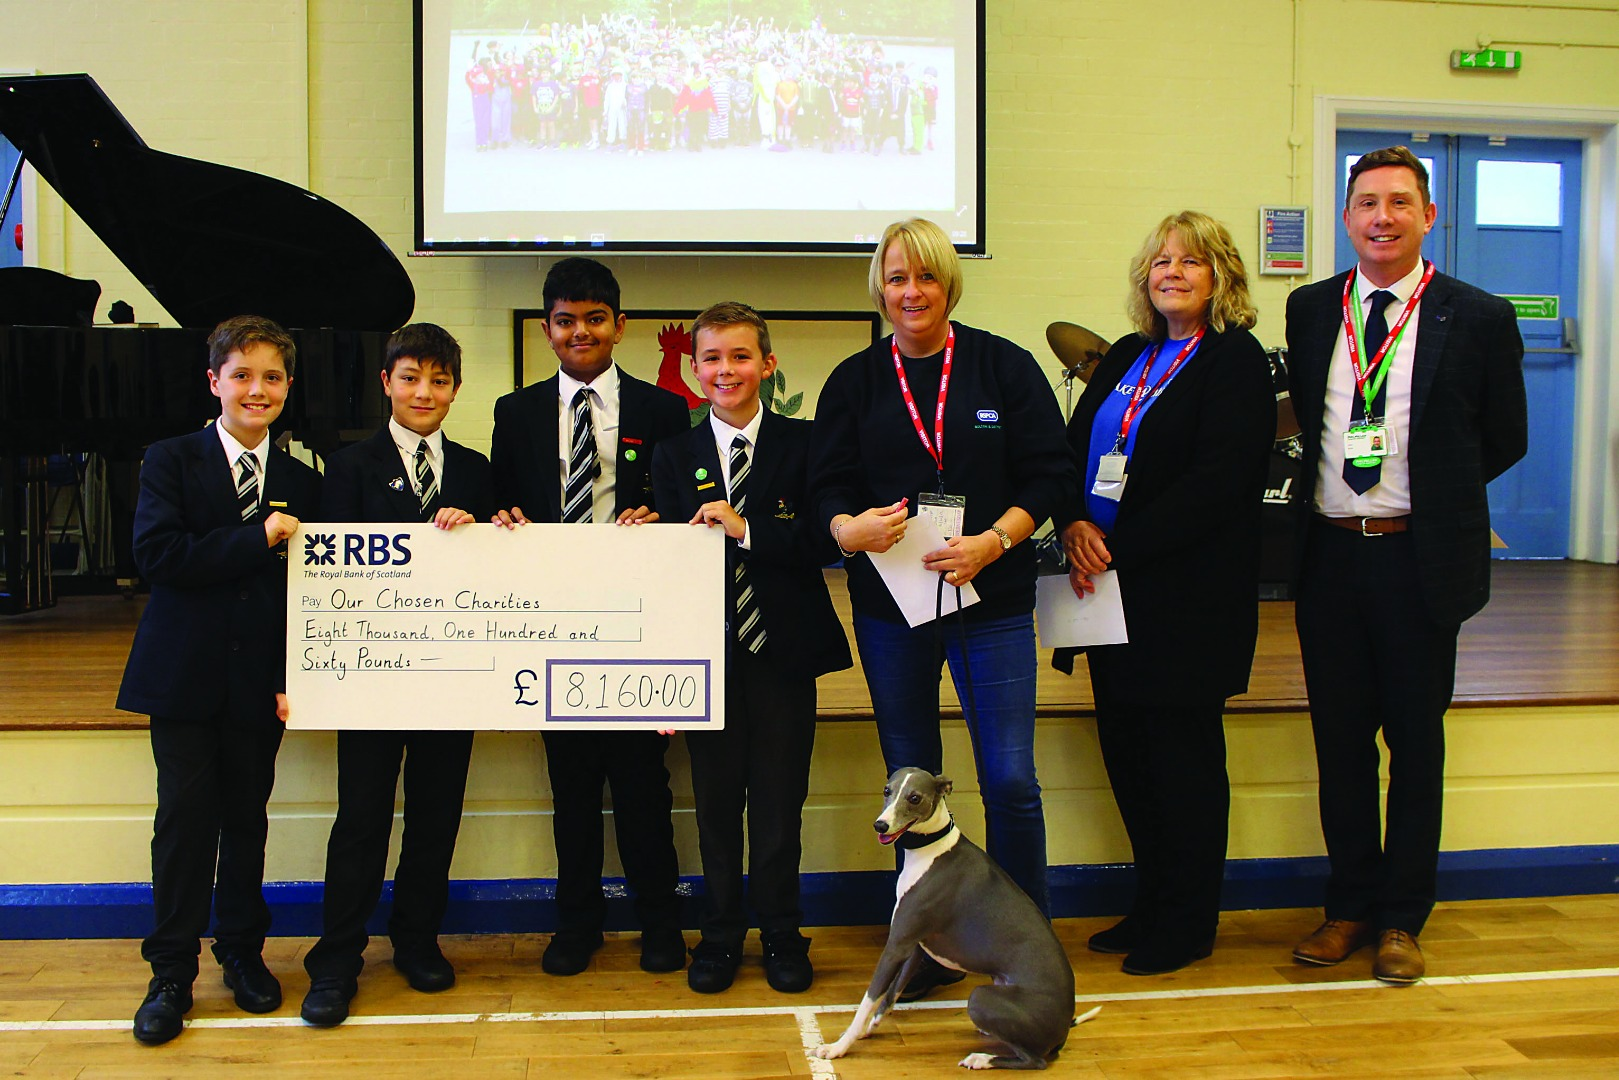 School donates £8000 to charities